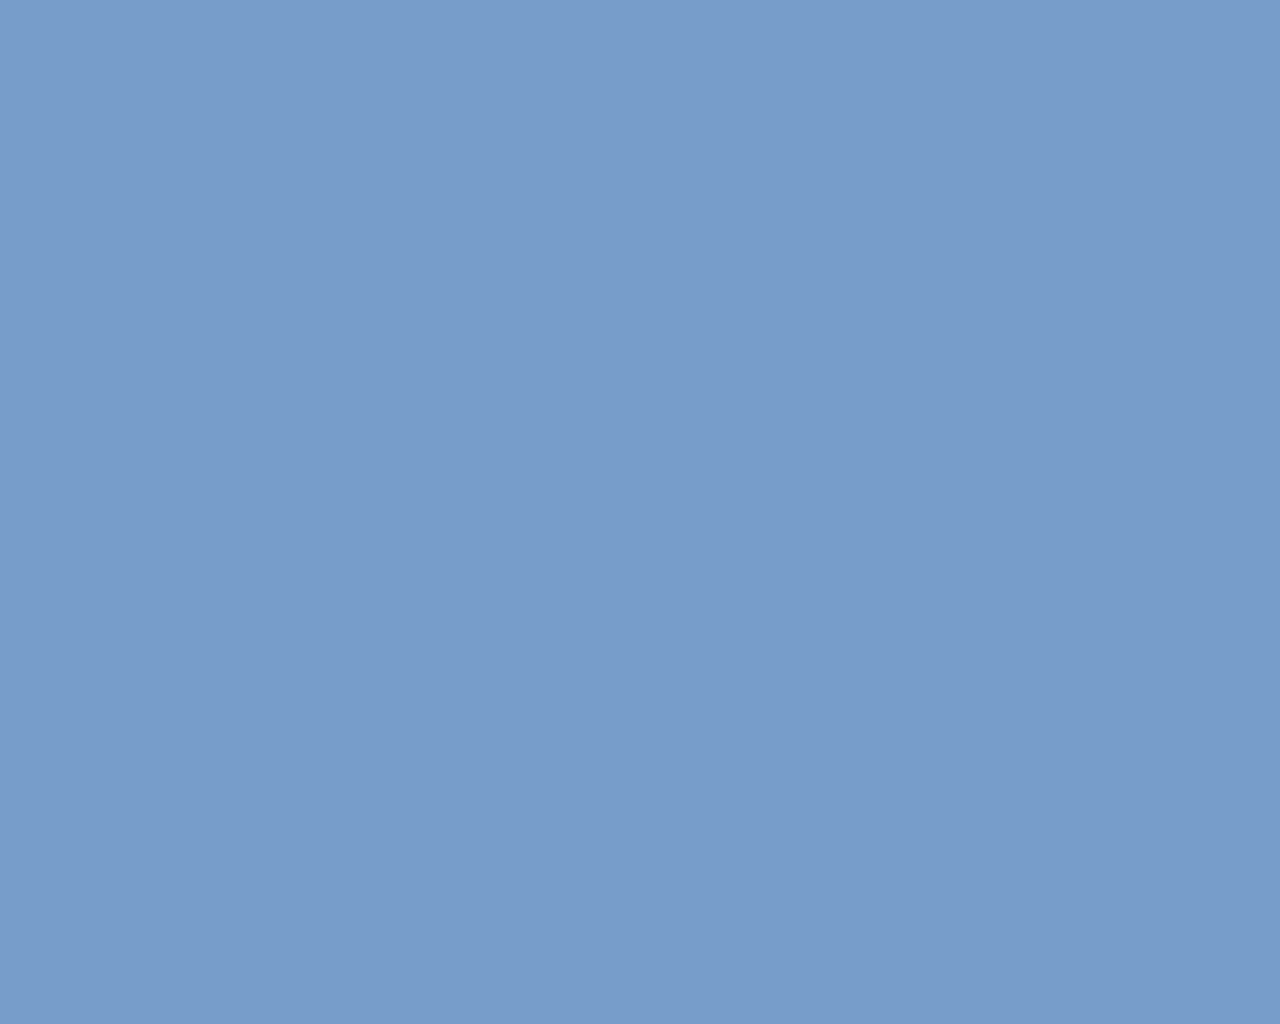 1280x1024 Dark Pastel Blue Solid Color Background